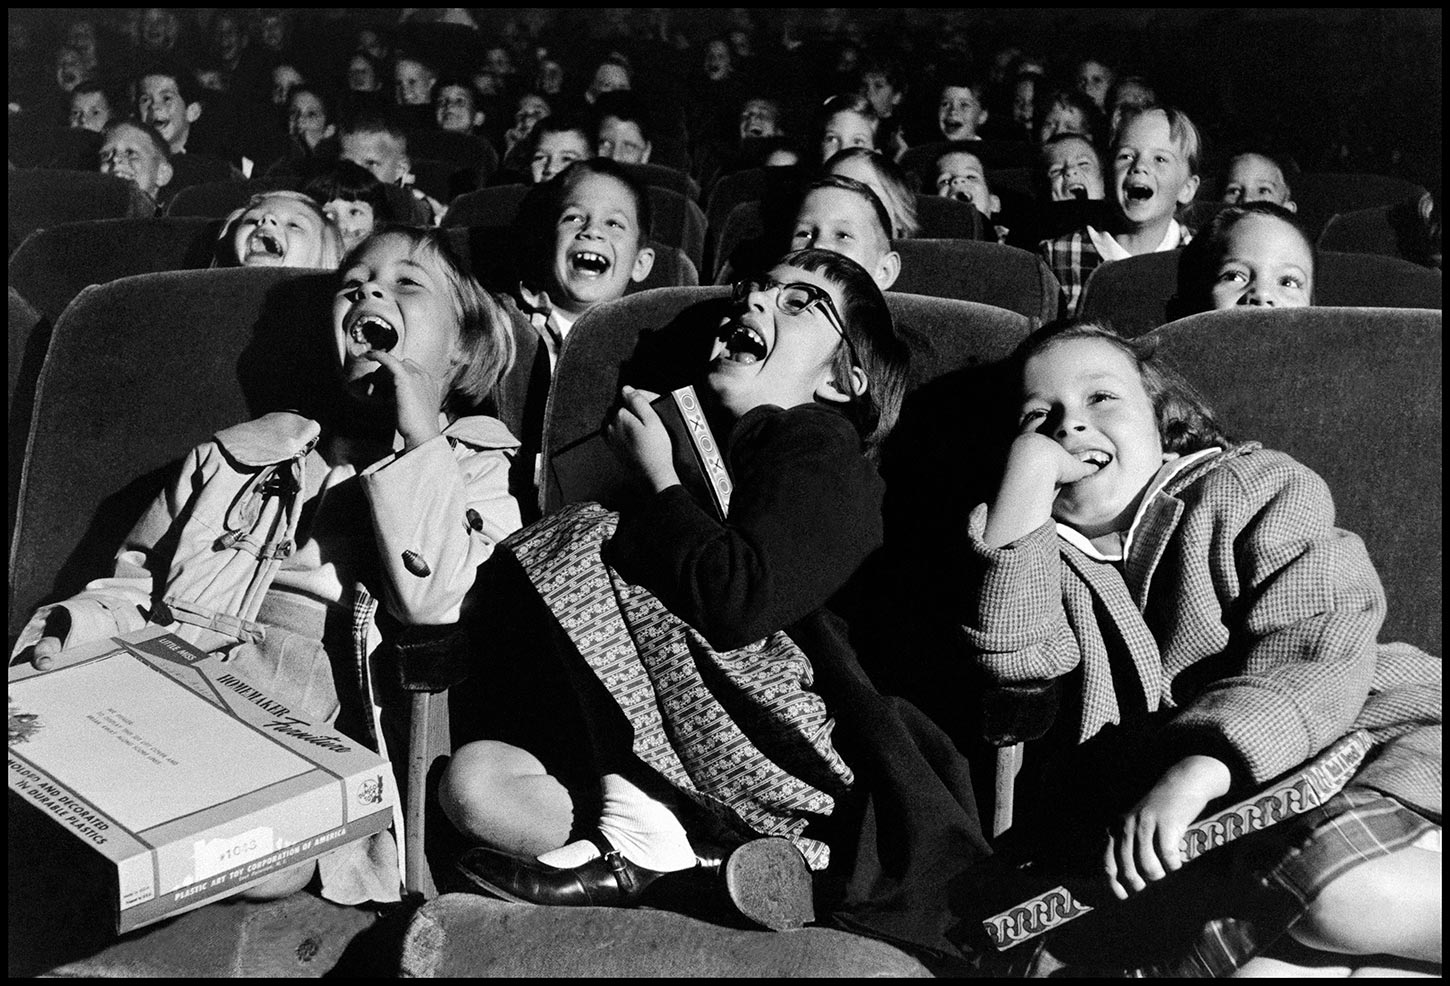 Children in a movie theater. USA. 1958.